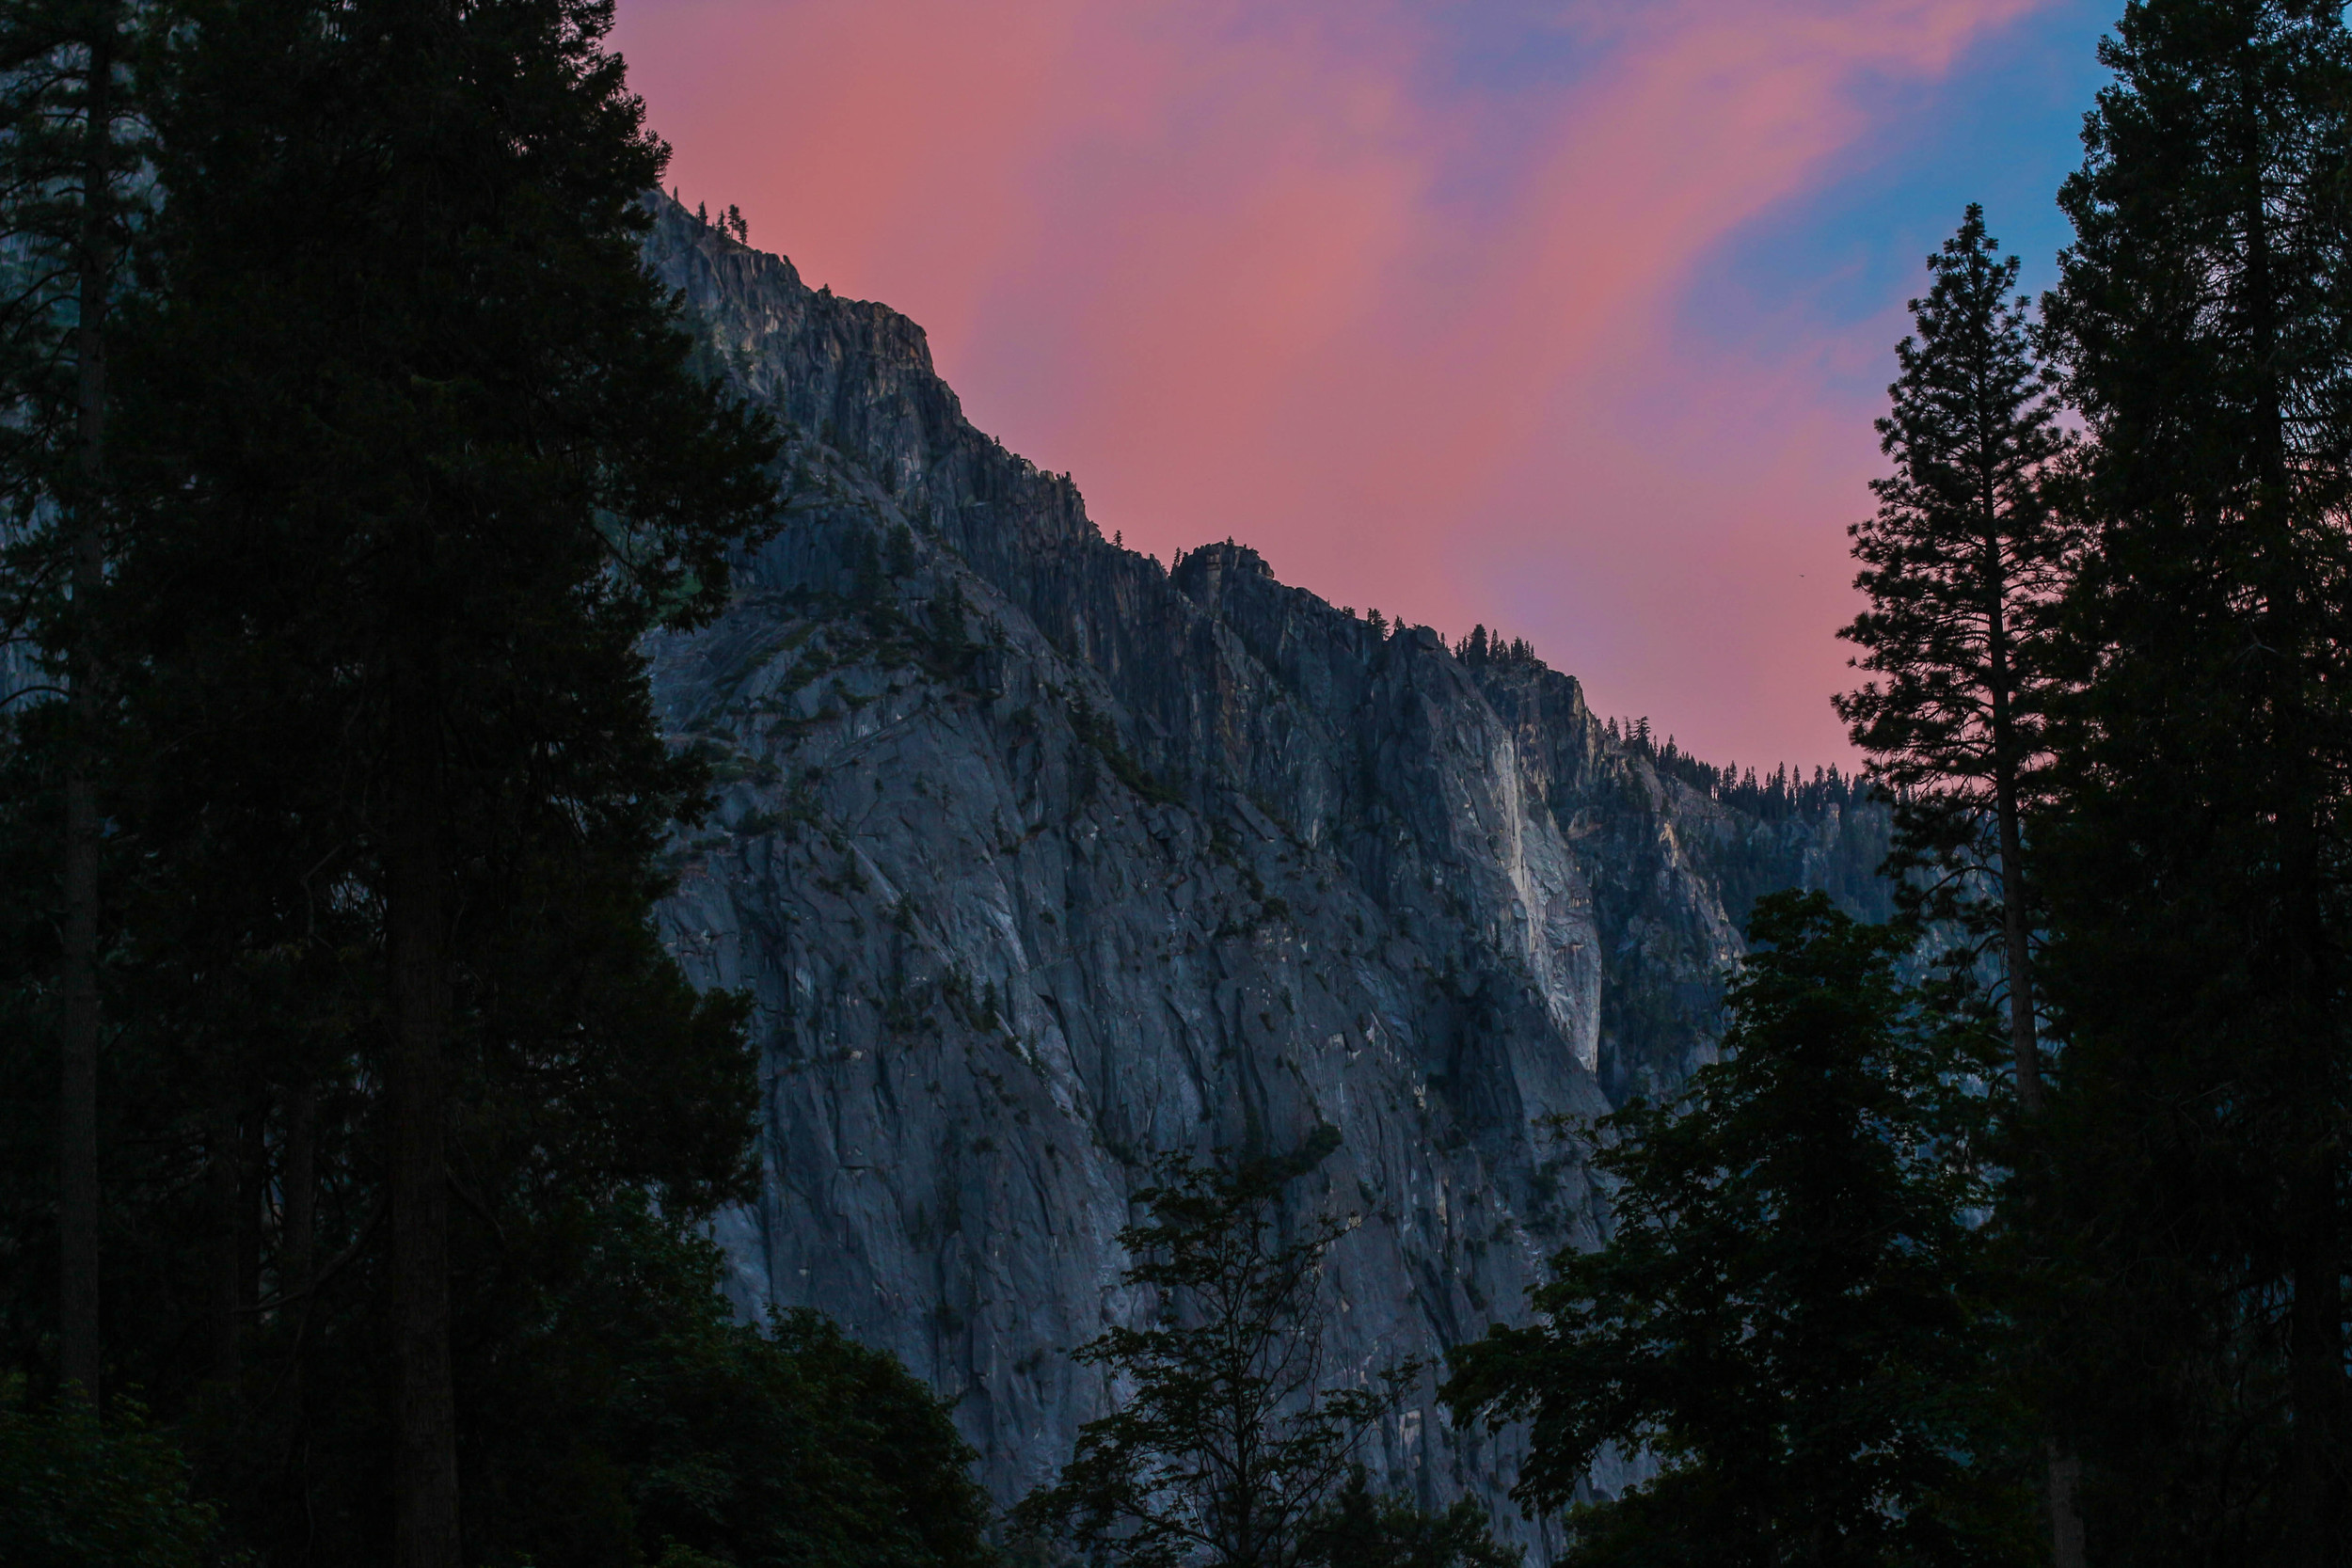 The sunset view from the bottom of the Hetch Hetchy valley camp site.